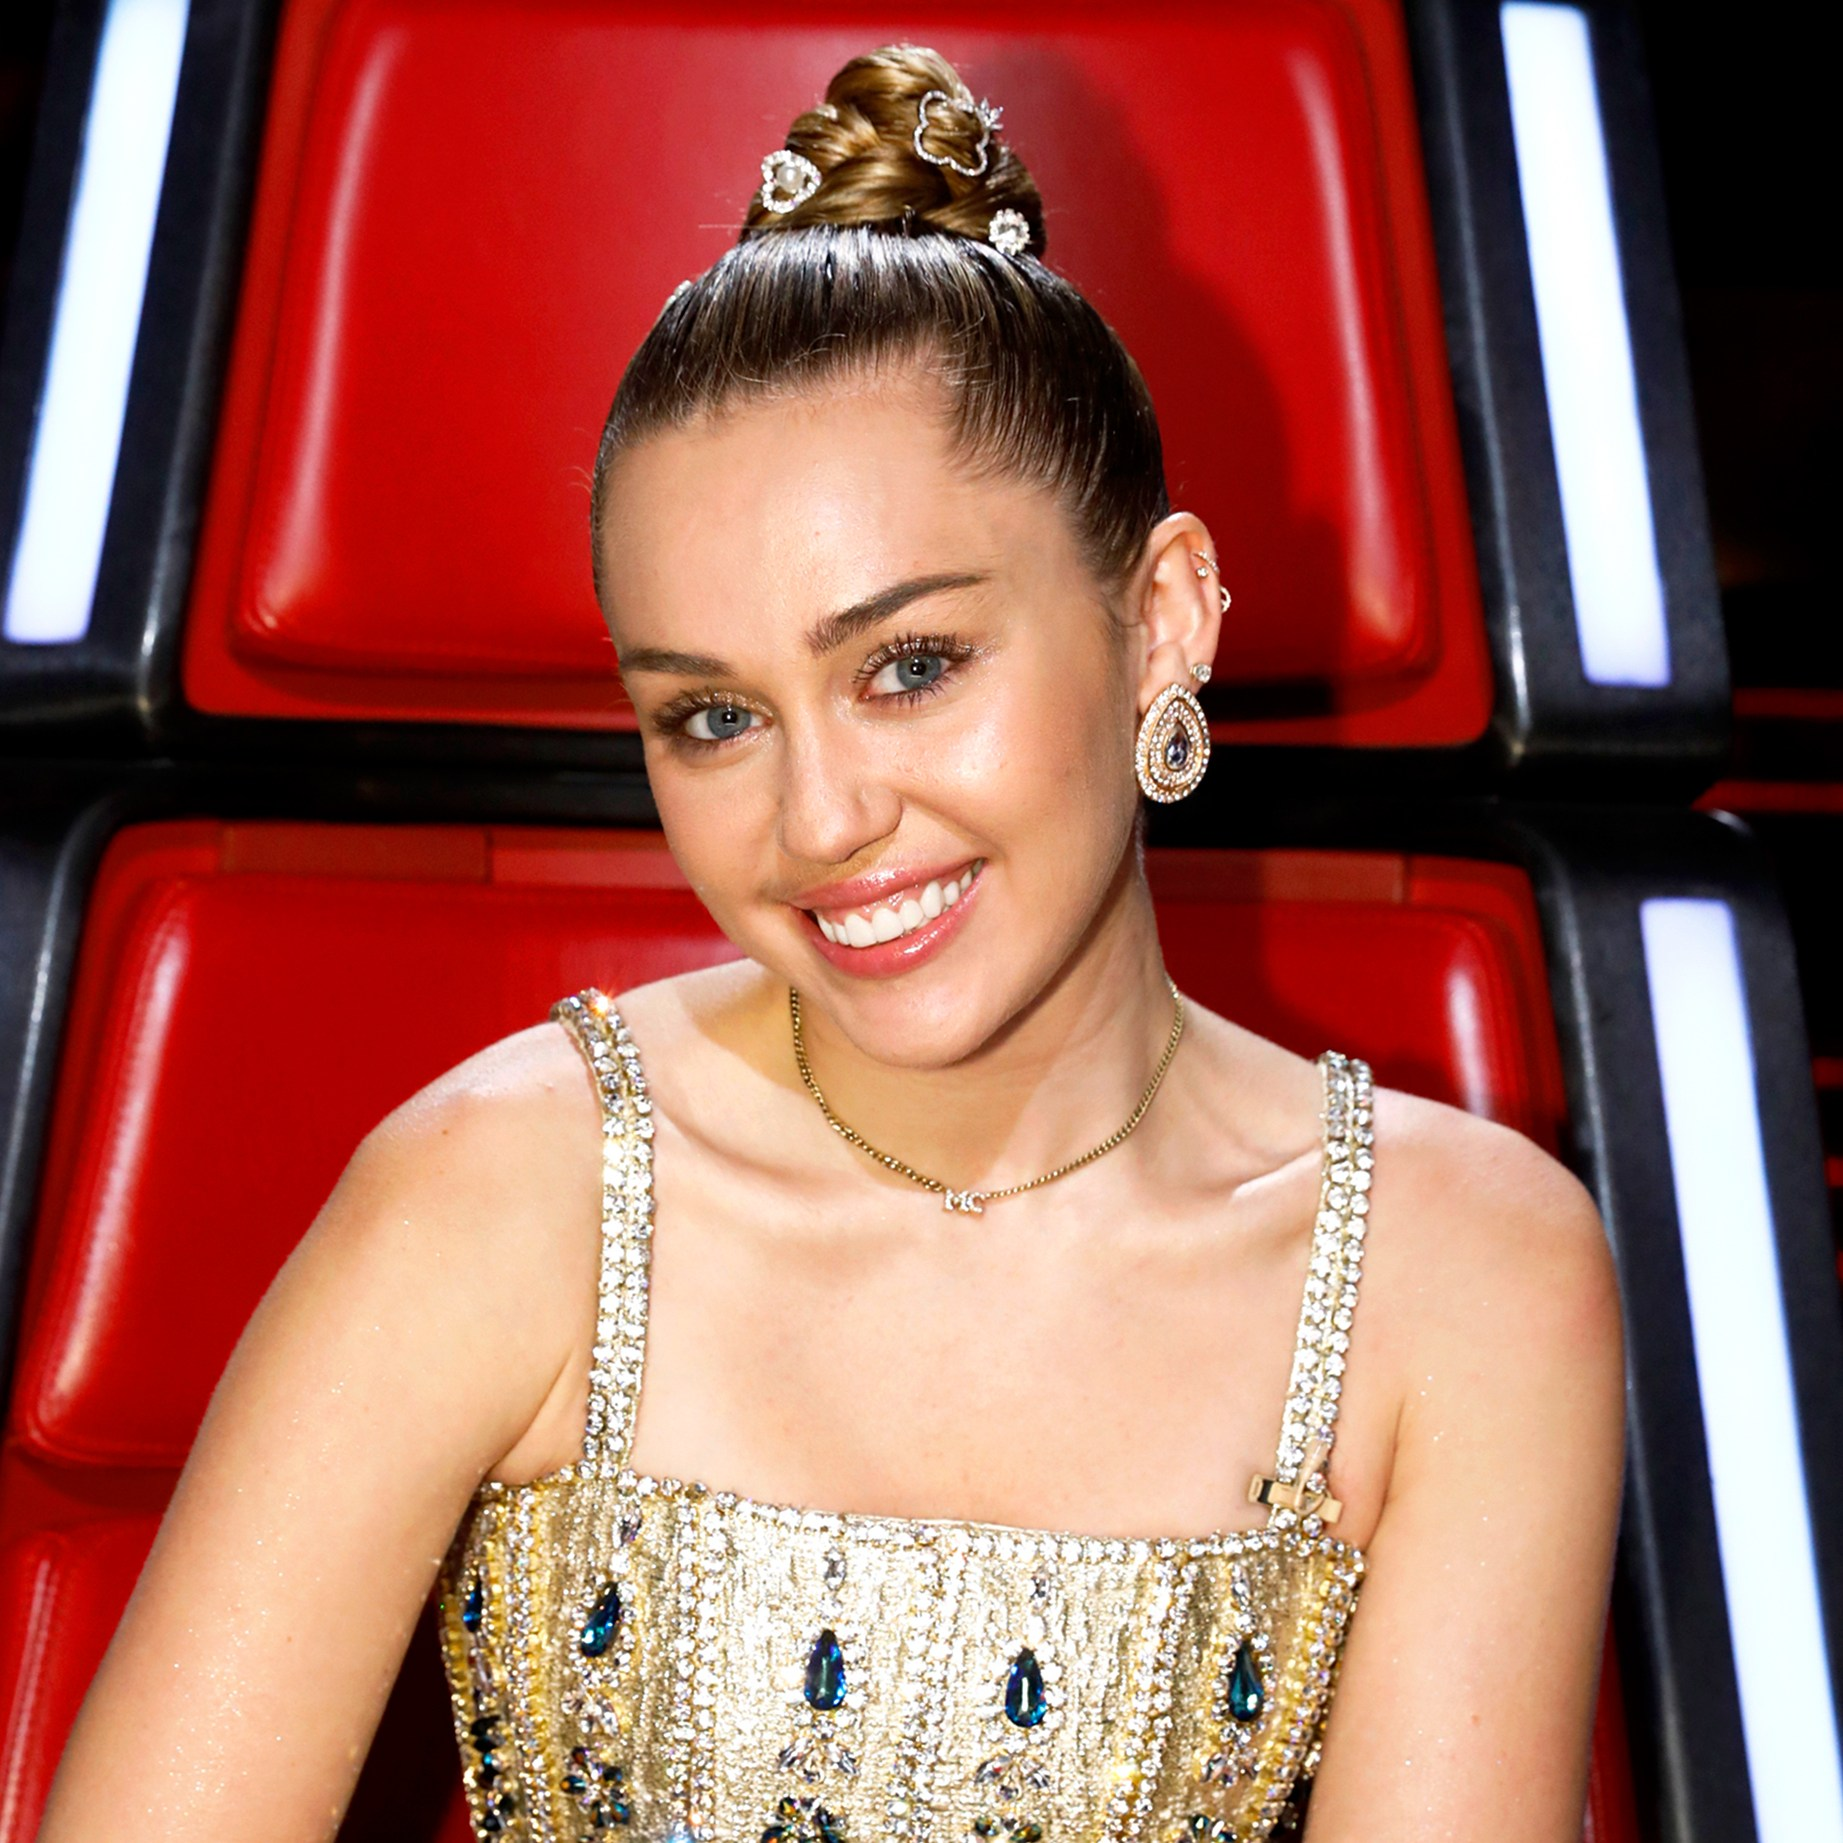 Miley Cyrus on 'The Voice'